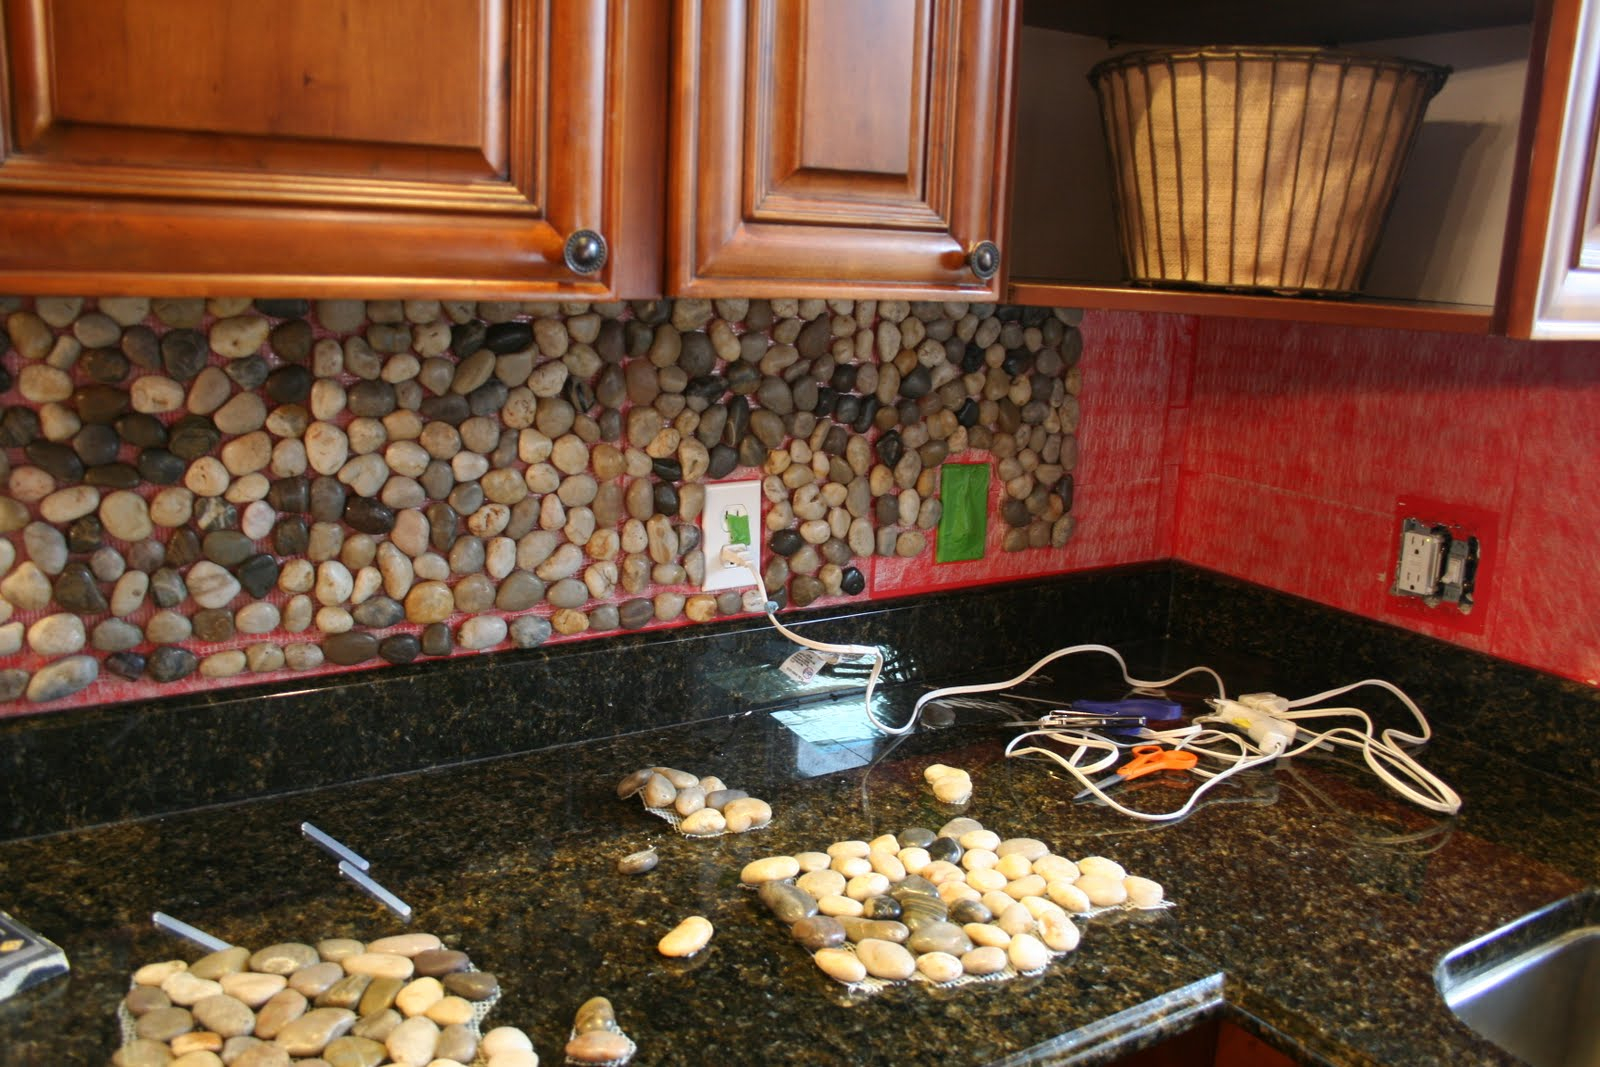 Glamorous Garden Stone Kitchen Backsplash Tutorial {How To Backsplash} within Unique How To Install Stone Backsplash